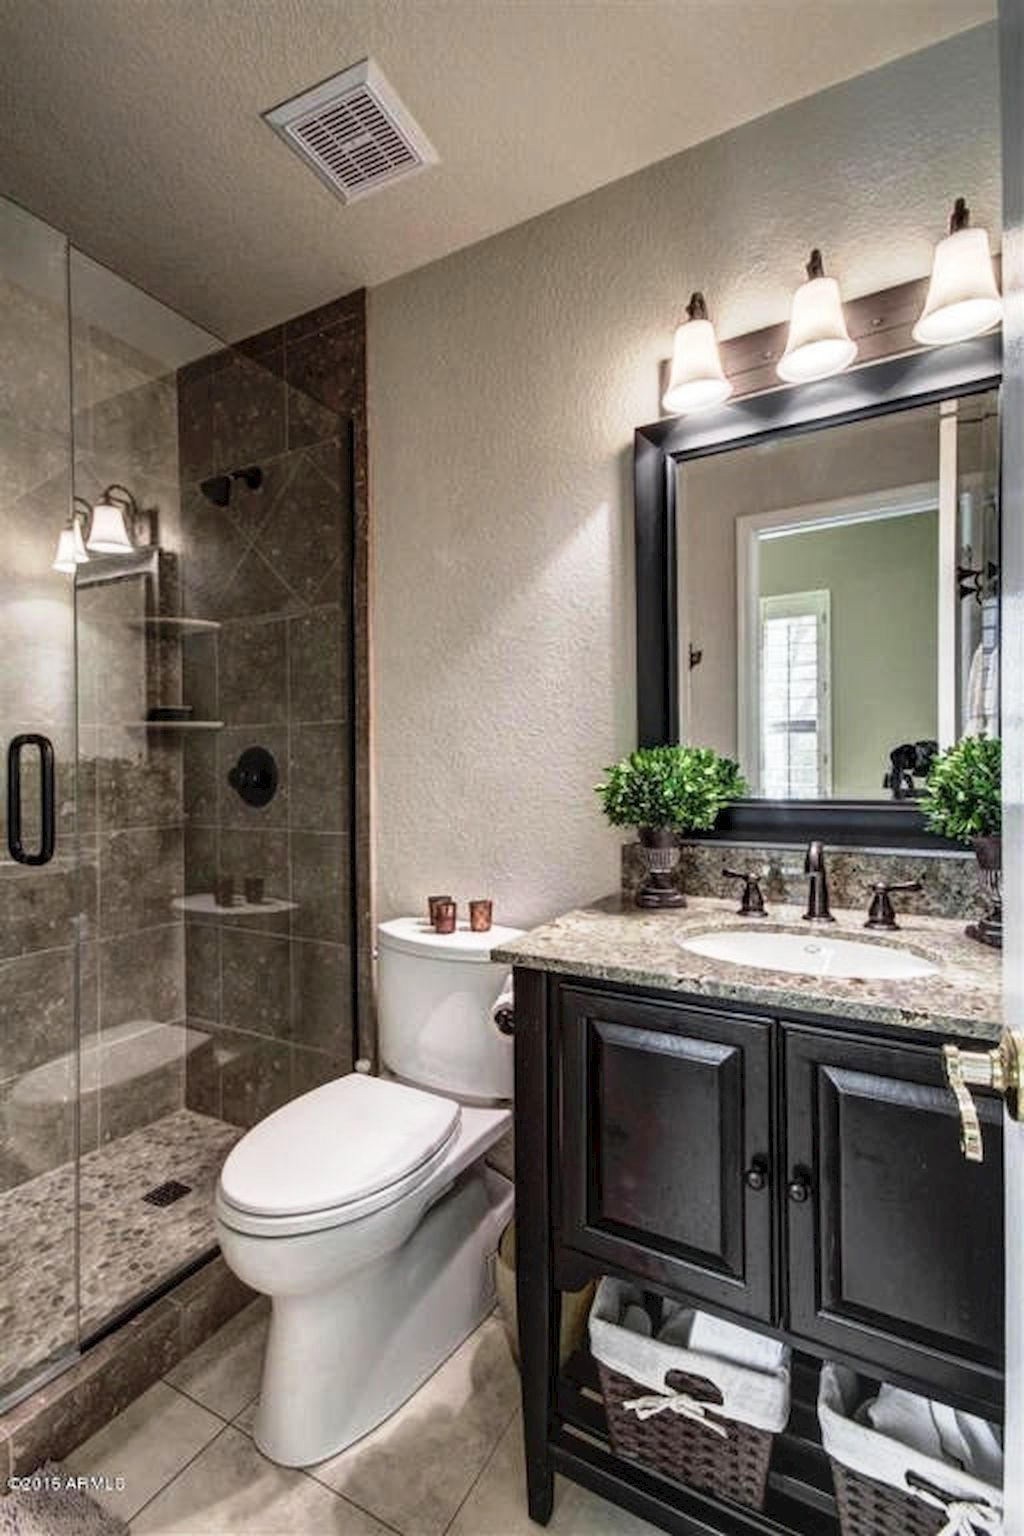 How to Use Low Budget to Remodel Small Master Bathroom ... on Small Bathroom Renovations  id=44038